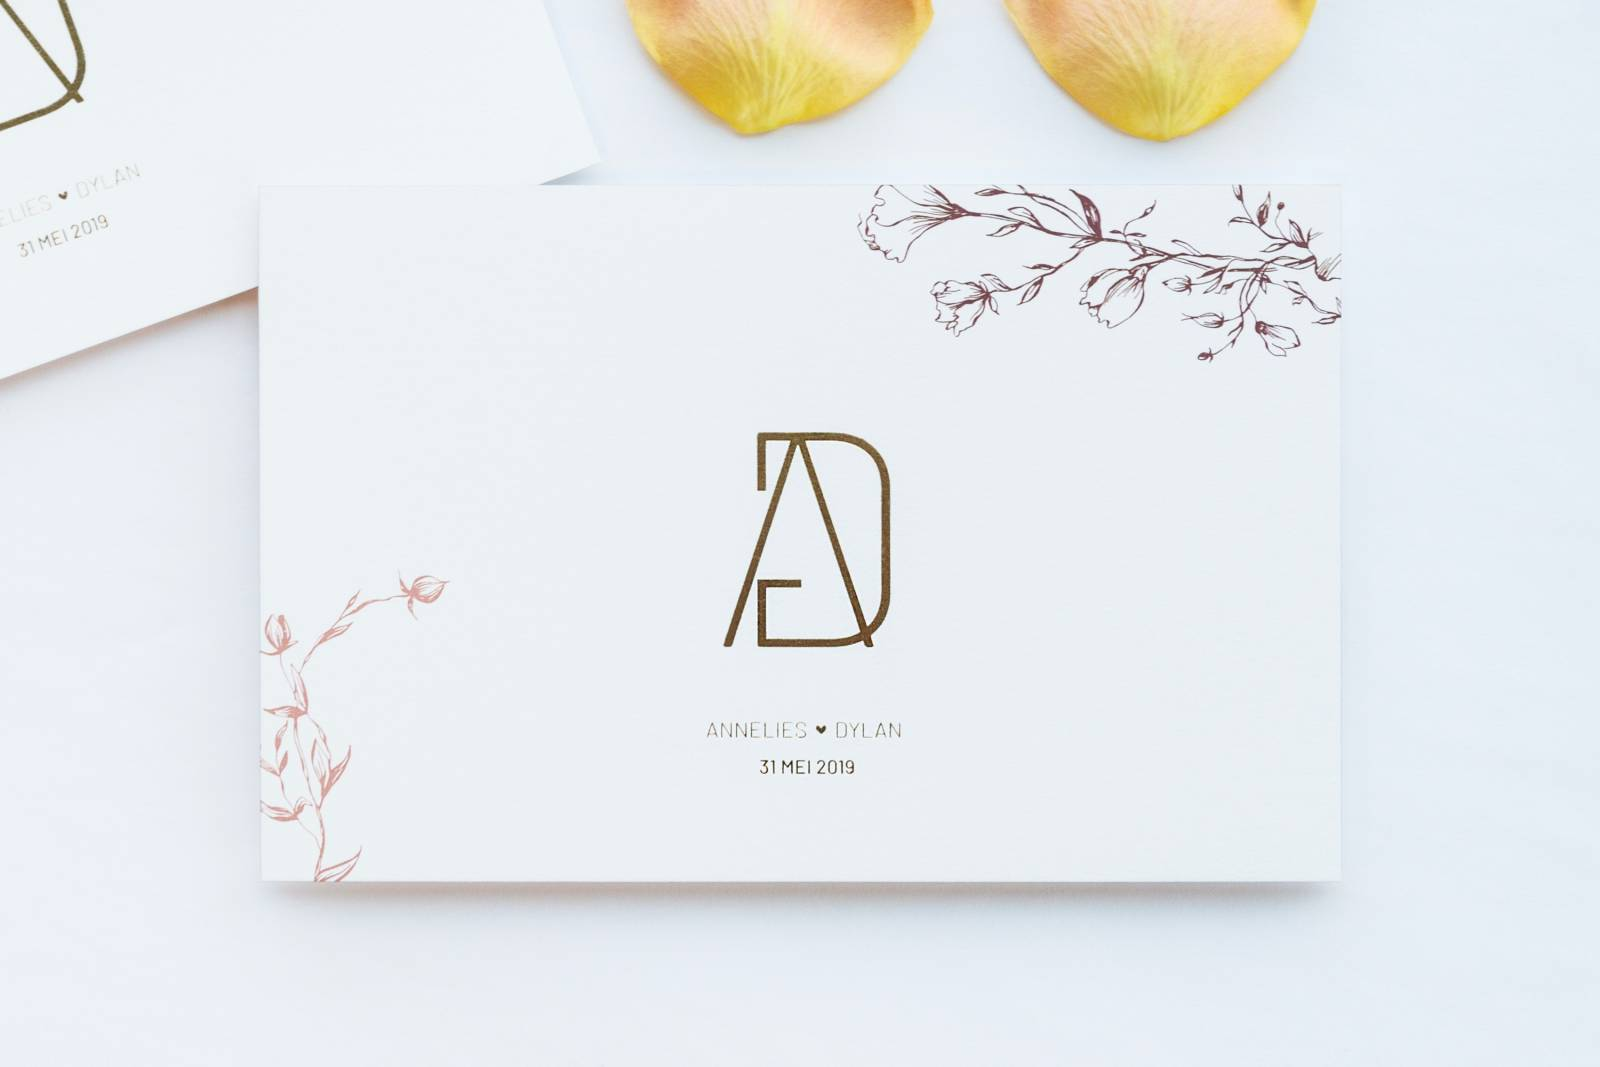 Designcards - trouwuitnodiging - drukwerk huwelijk - grafisch design - House of Weddings - 24